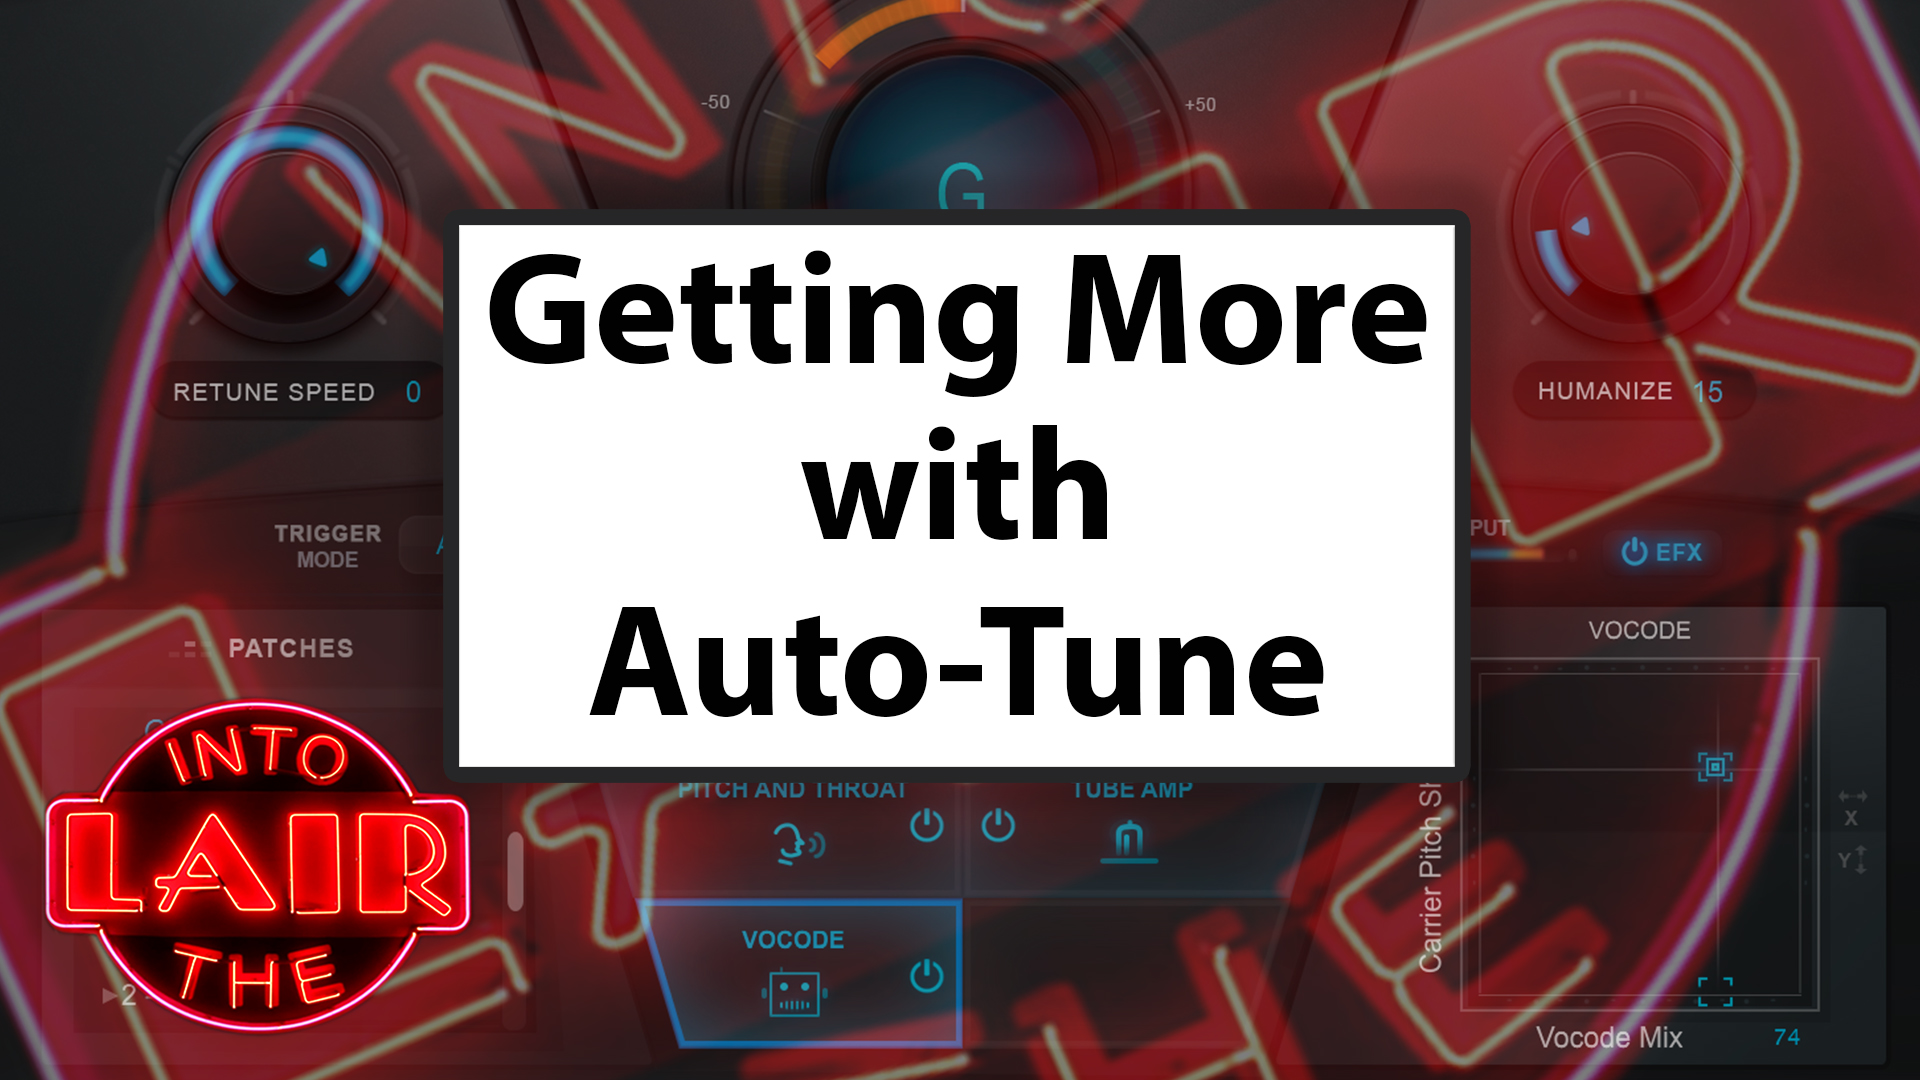 Getting More with Auto-Tune